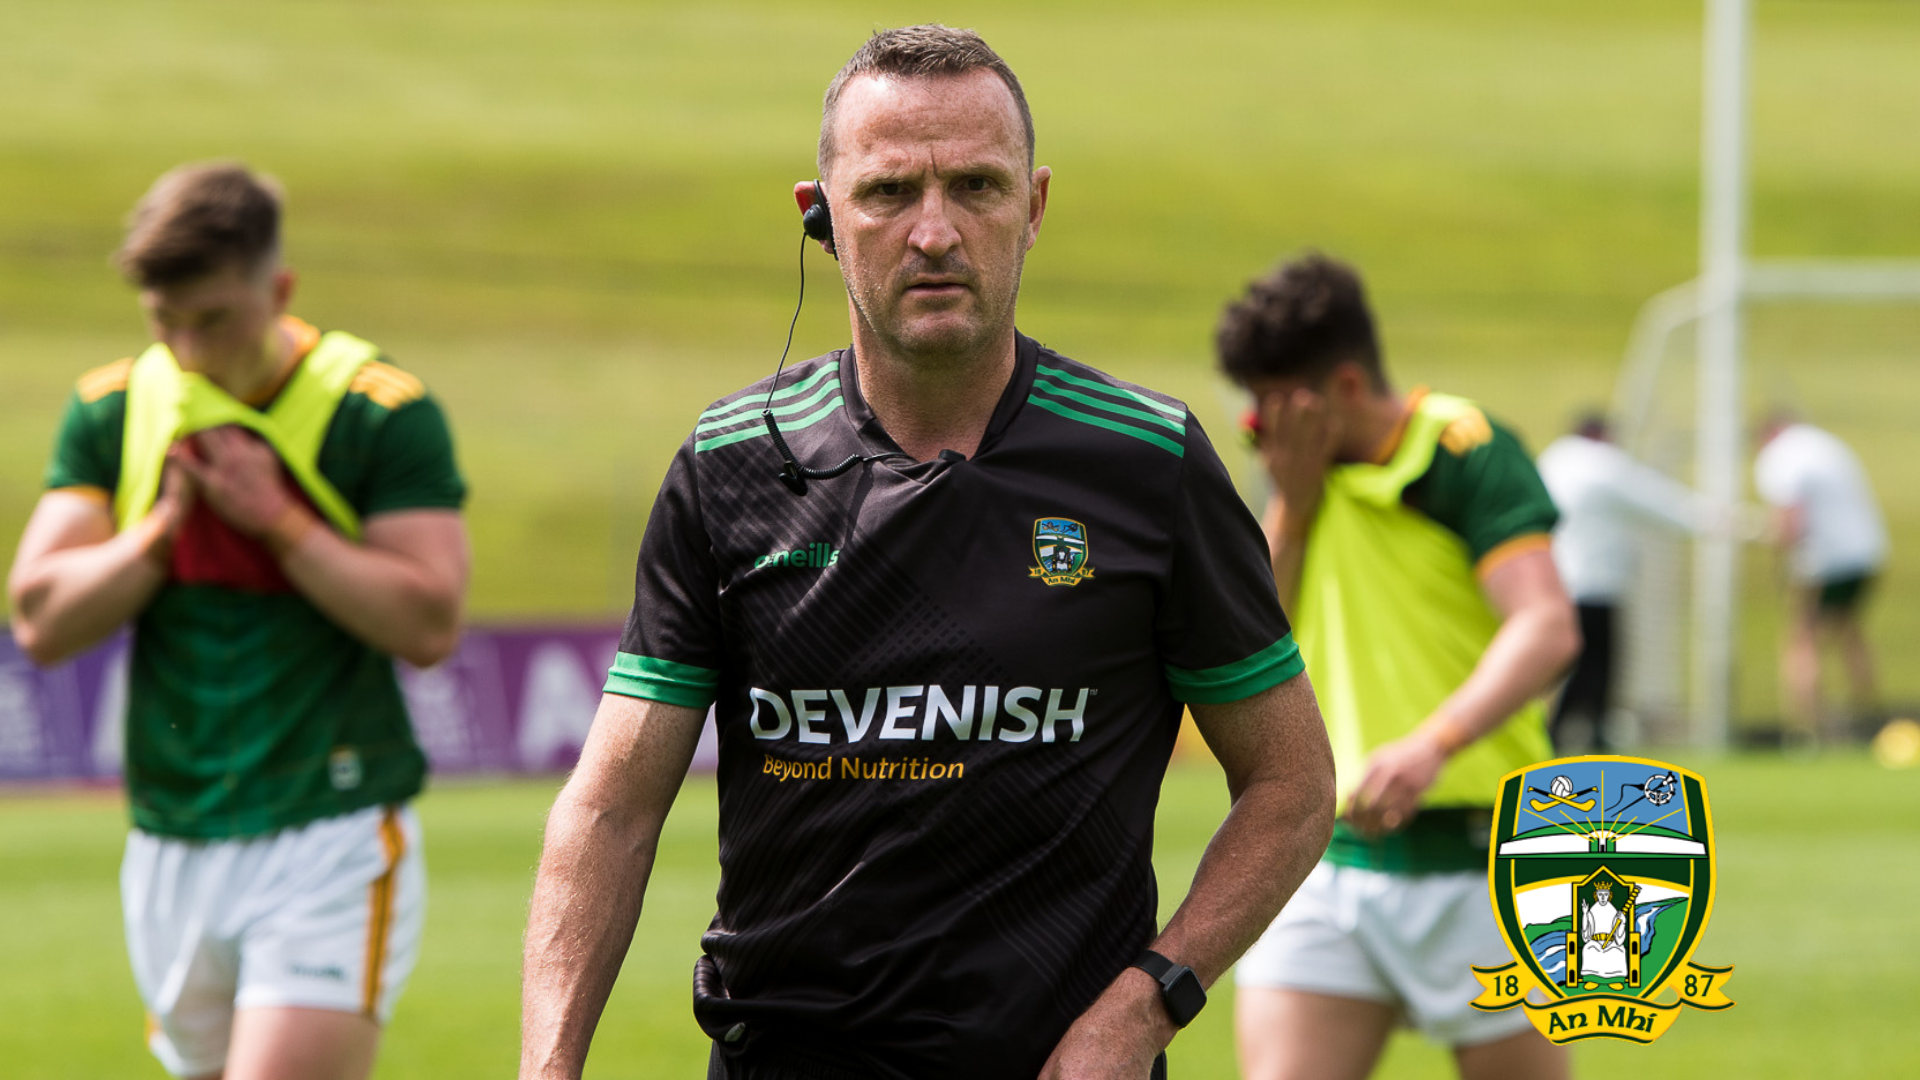 Andy McEntee endorsed as the County Senior Football Manager for 2022